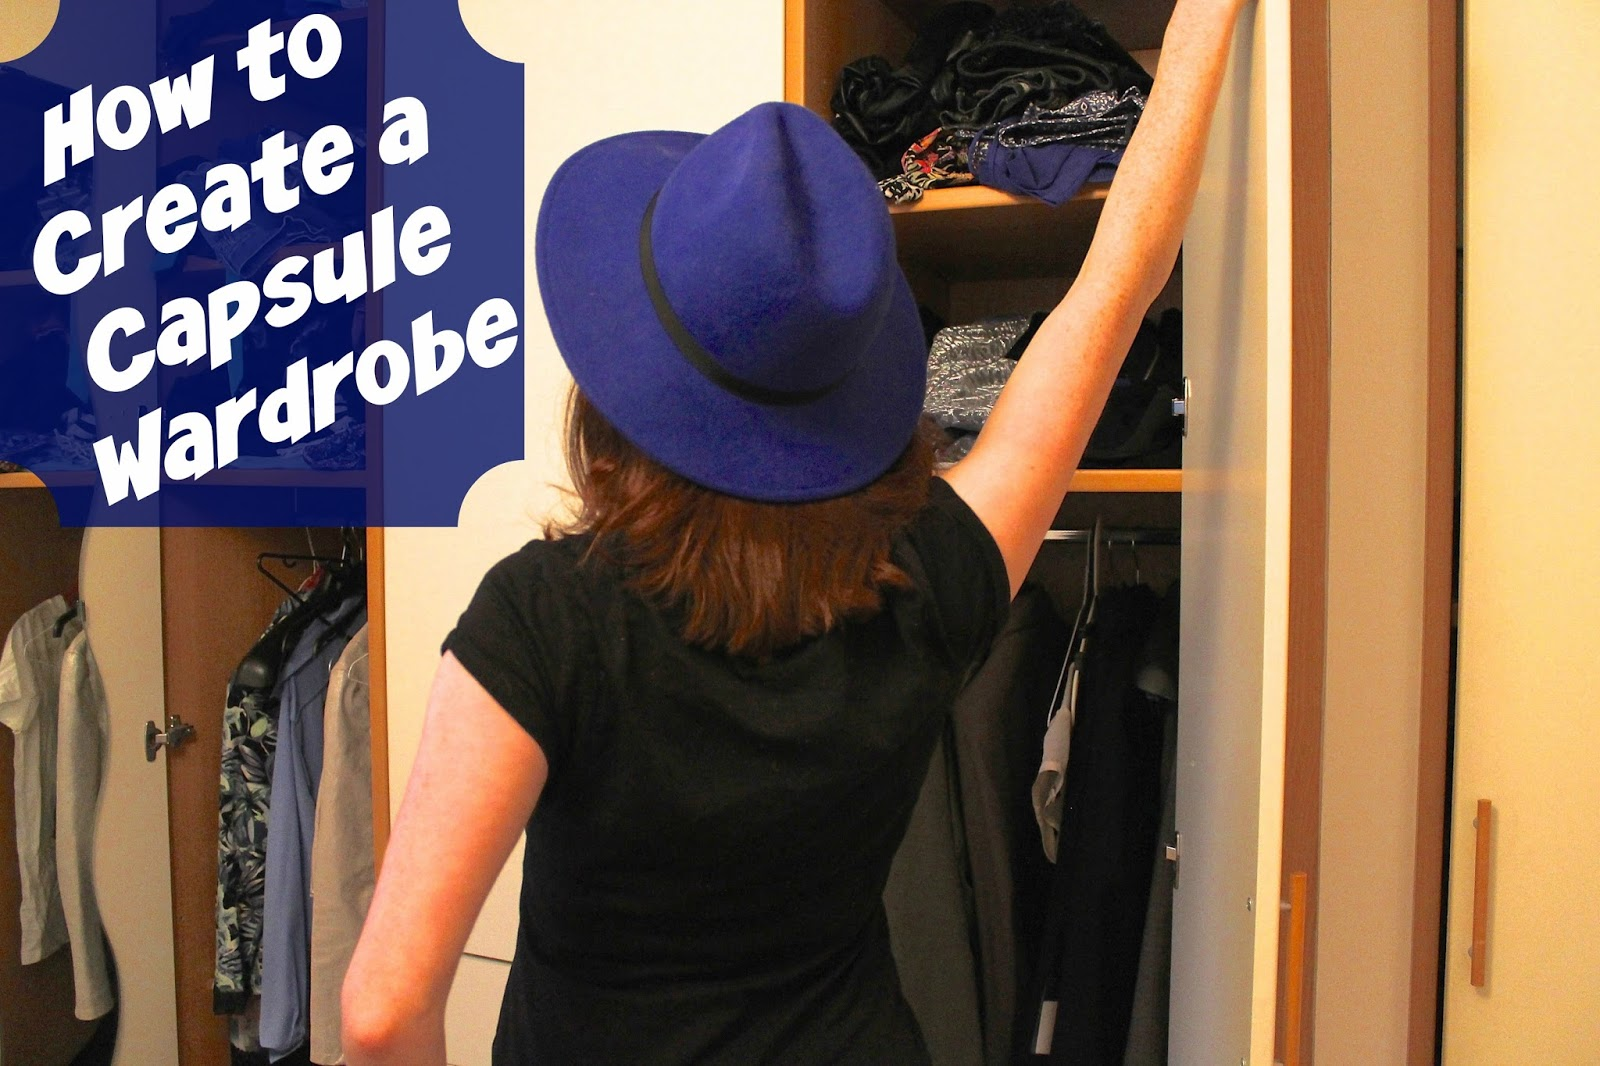 capsule wardrobe build create how to